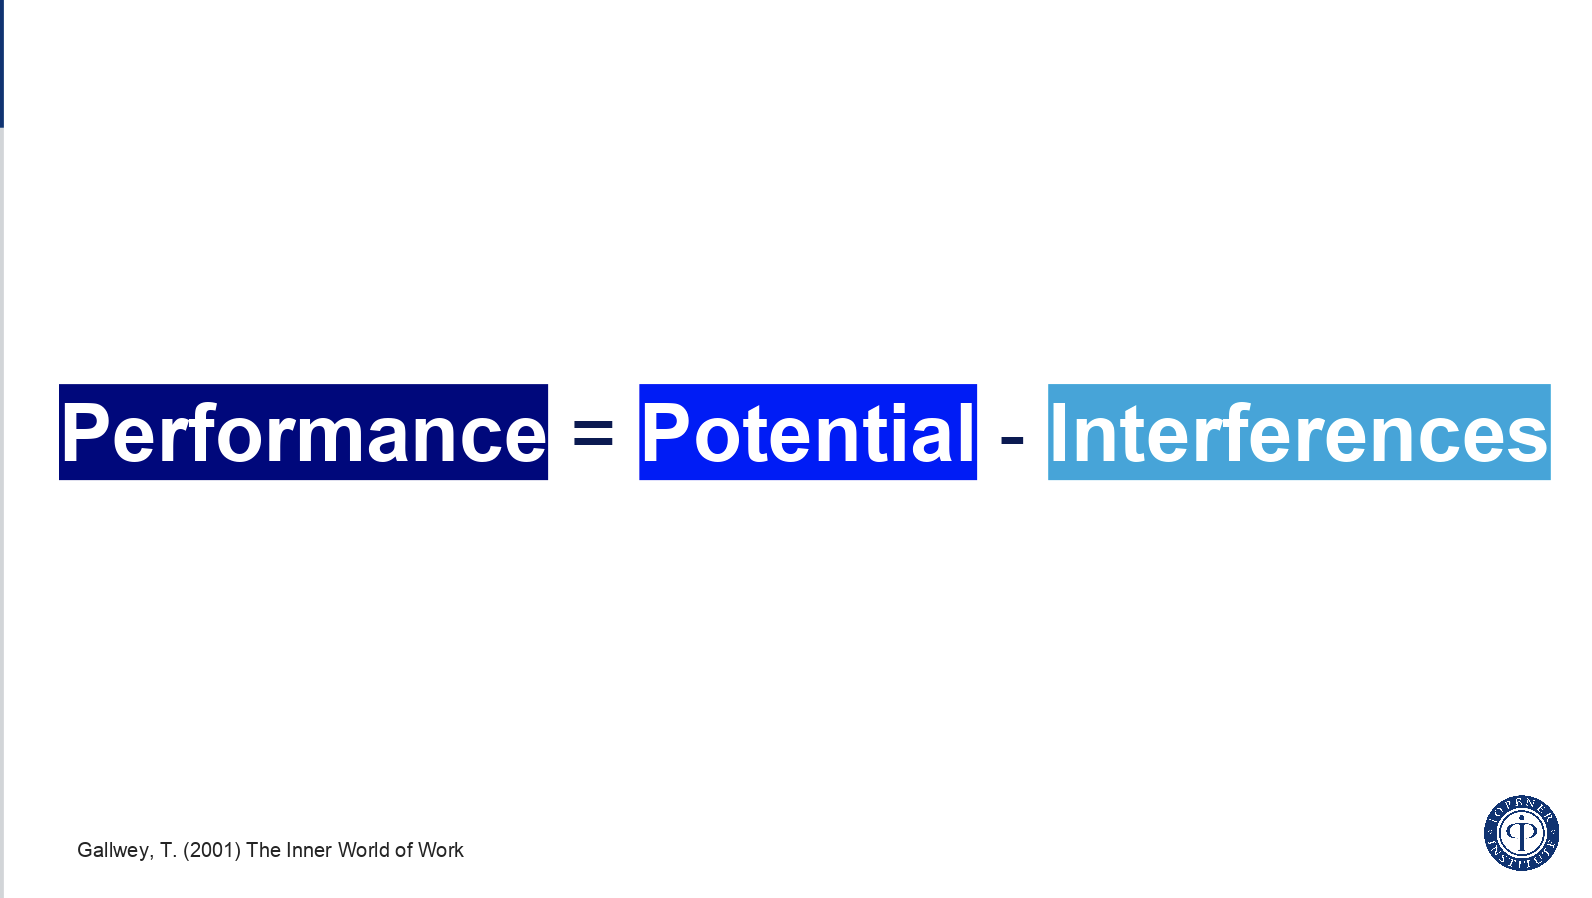 Performance=potential-Interface